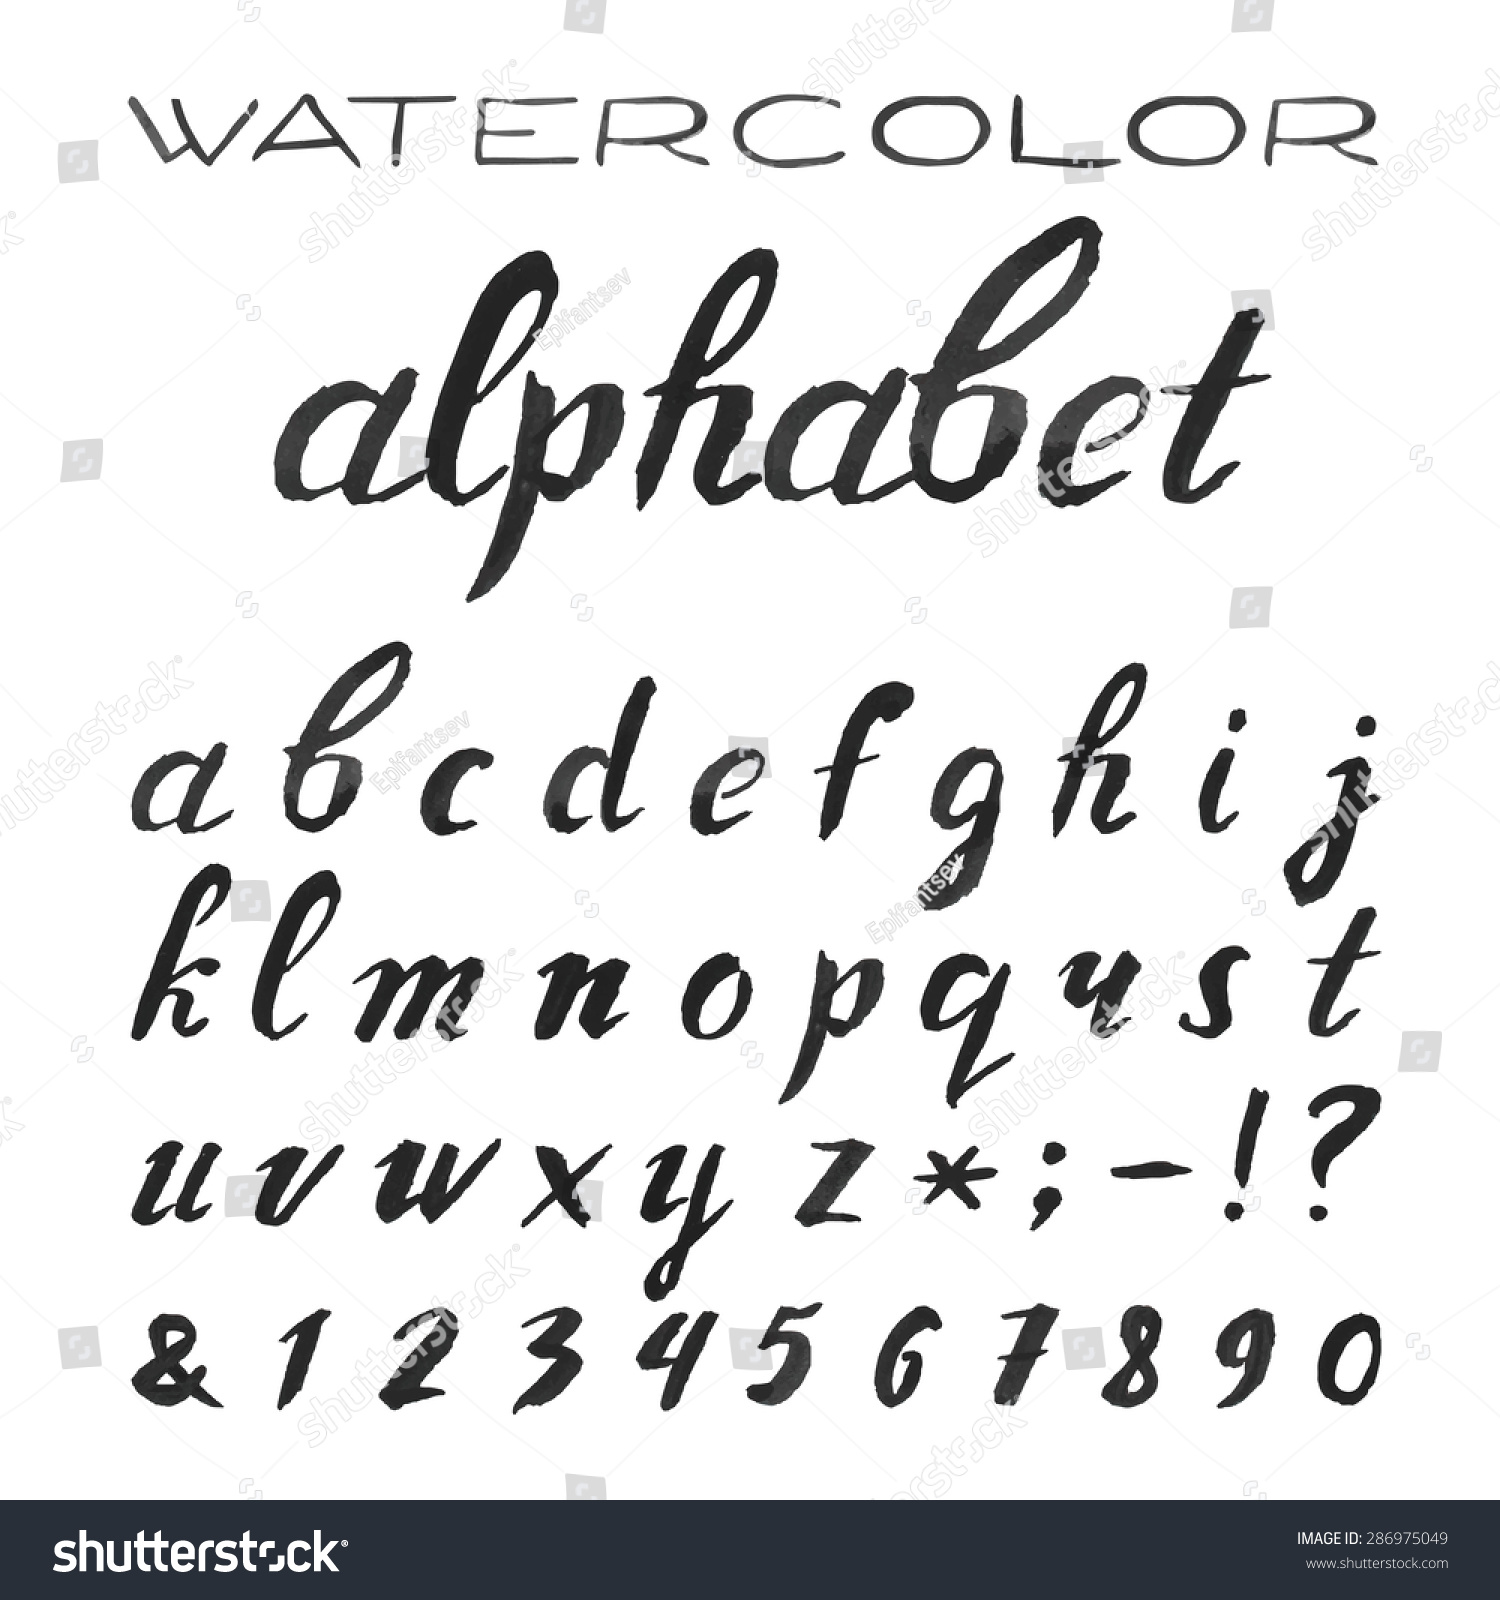 Worksheet Cursive Lettets watercolor alphabet painted vector font handpainted black stock hand cursive letters on the